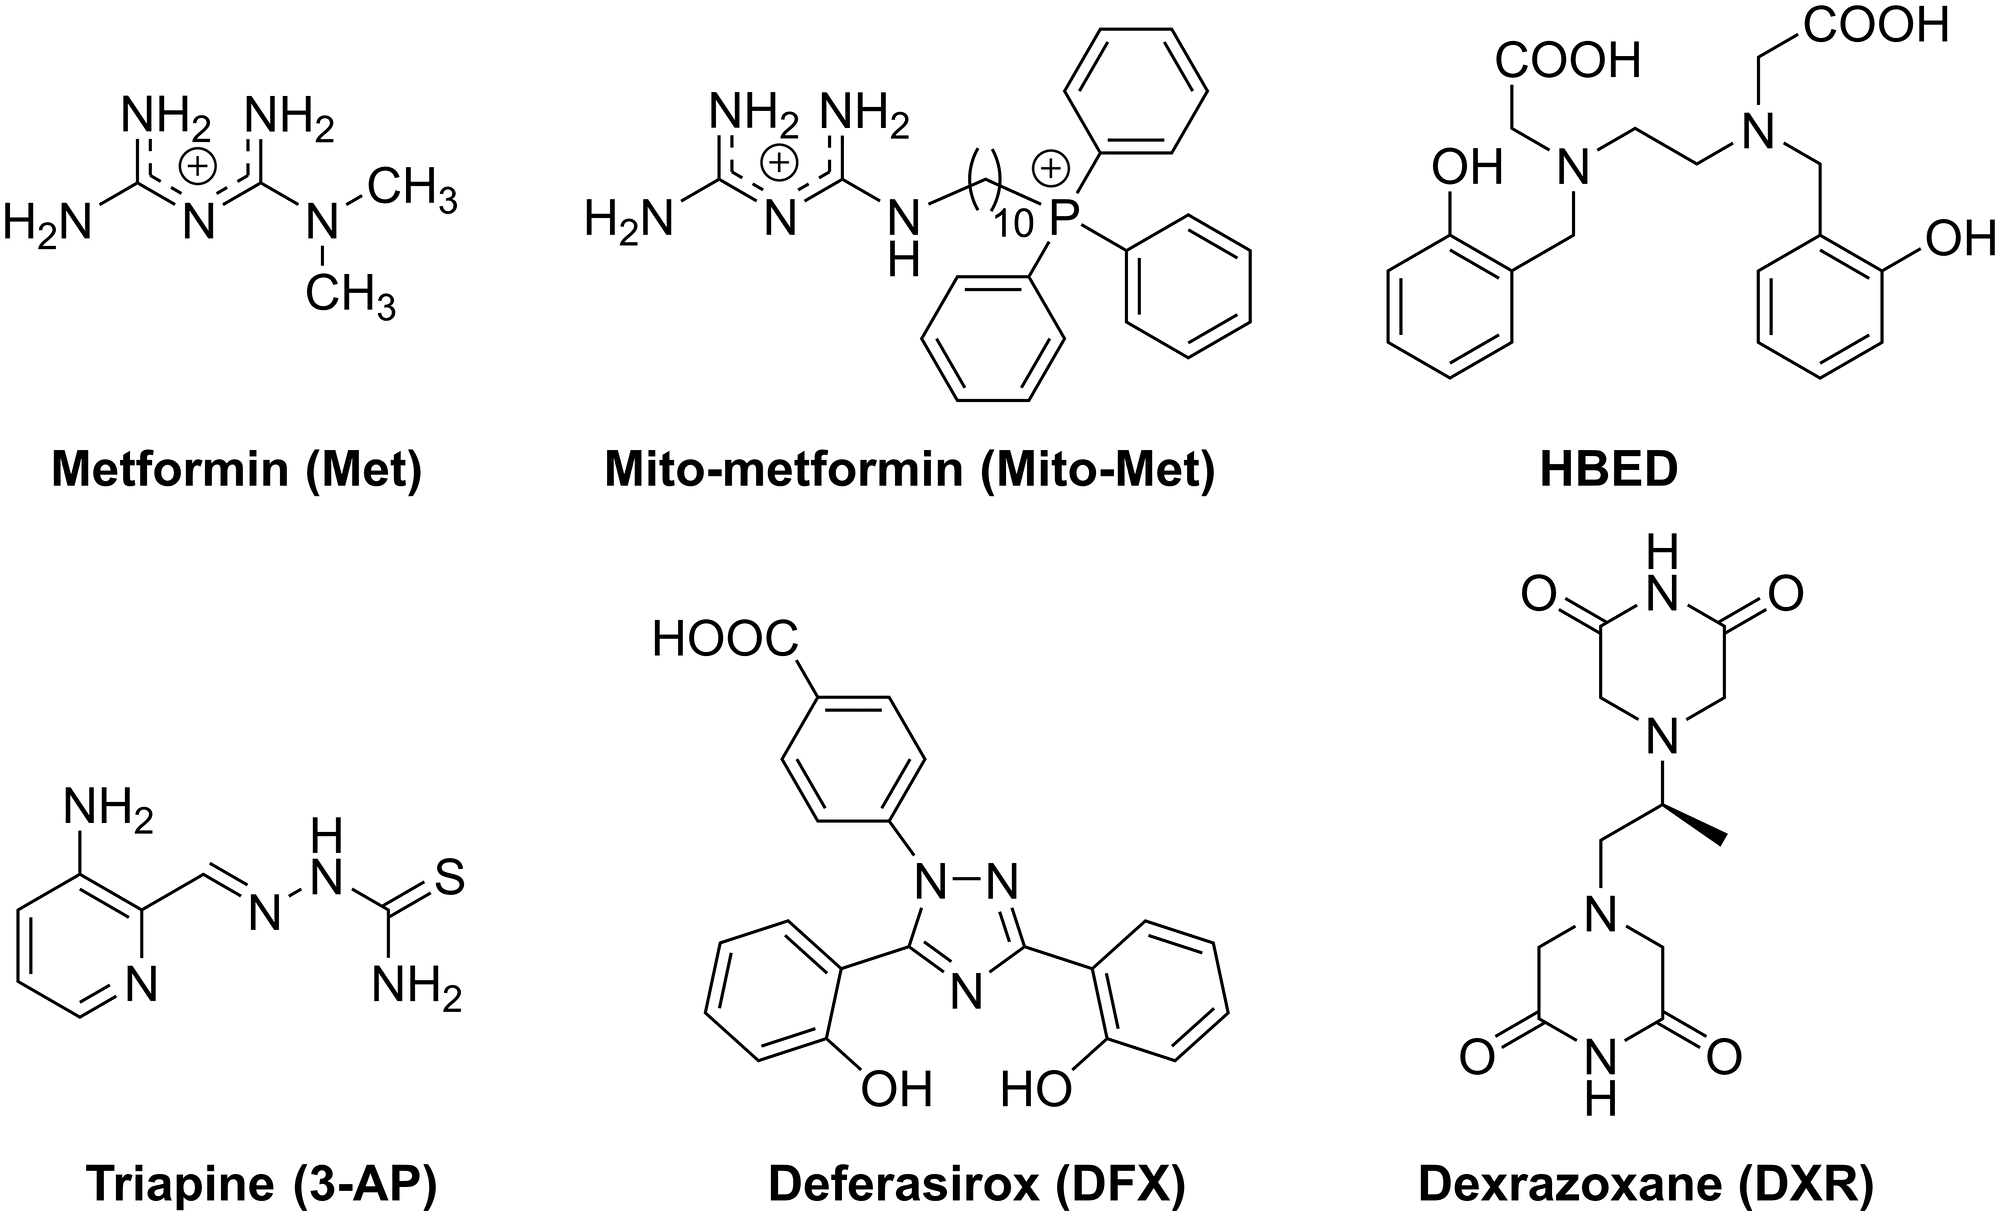 Chemical structures of iron chelators, Met, and Mito-Met used in this study.